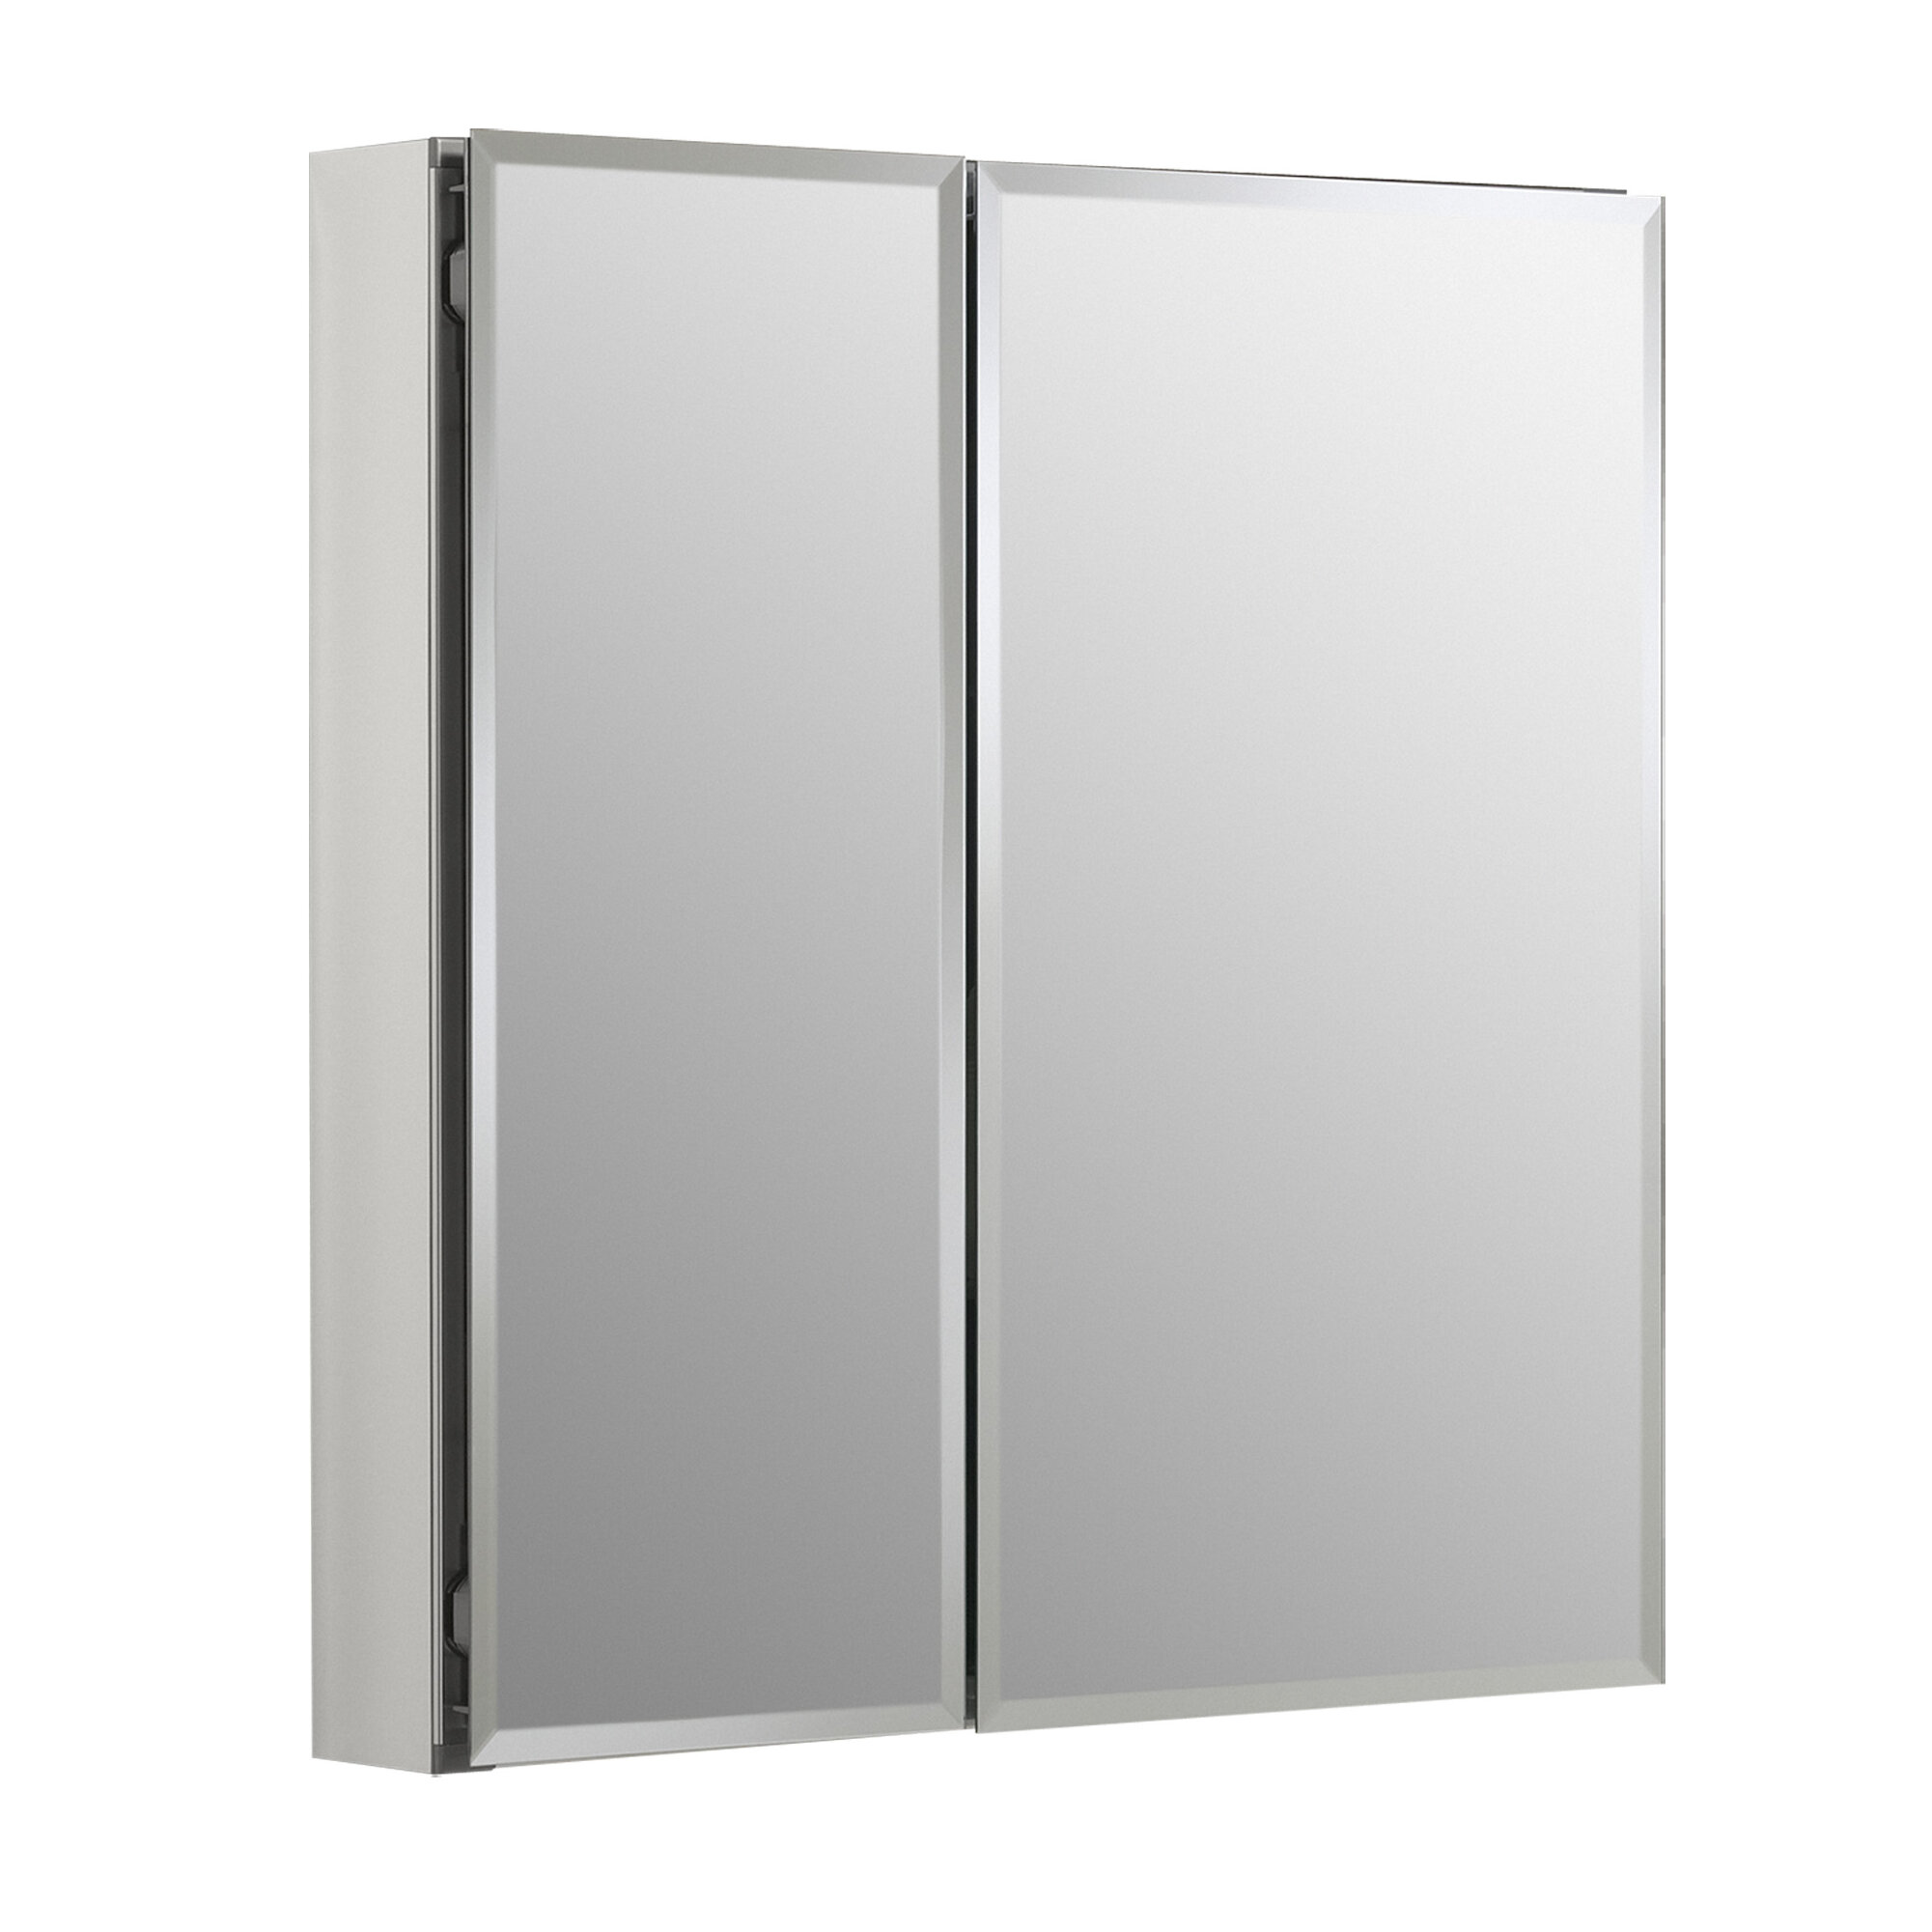 K Cb Clc2526fs Kohler 25 X 26 Recessed Or Surface Mount Frameless Medicine Cabinet With 2 Adjule Shelves Reviews Wayfair